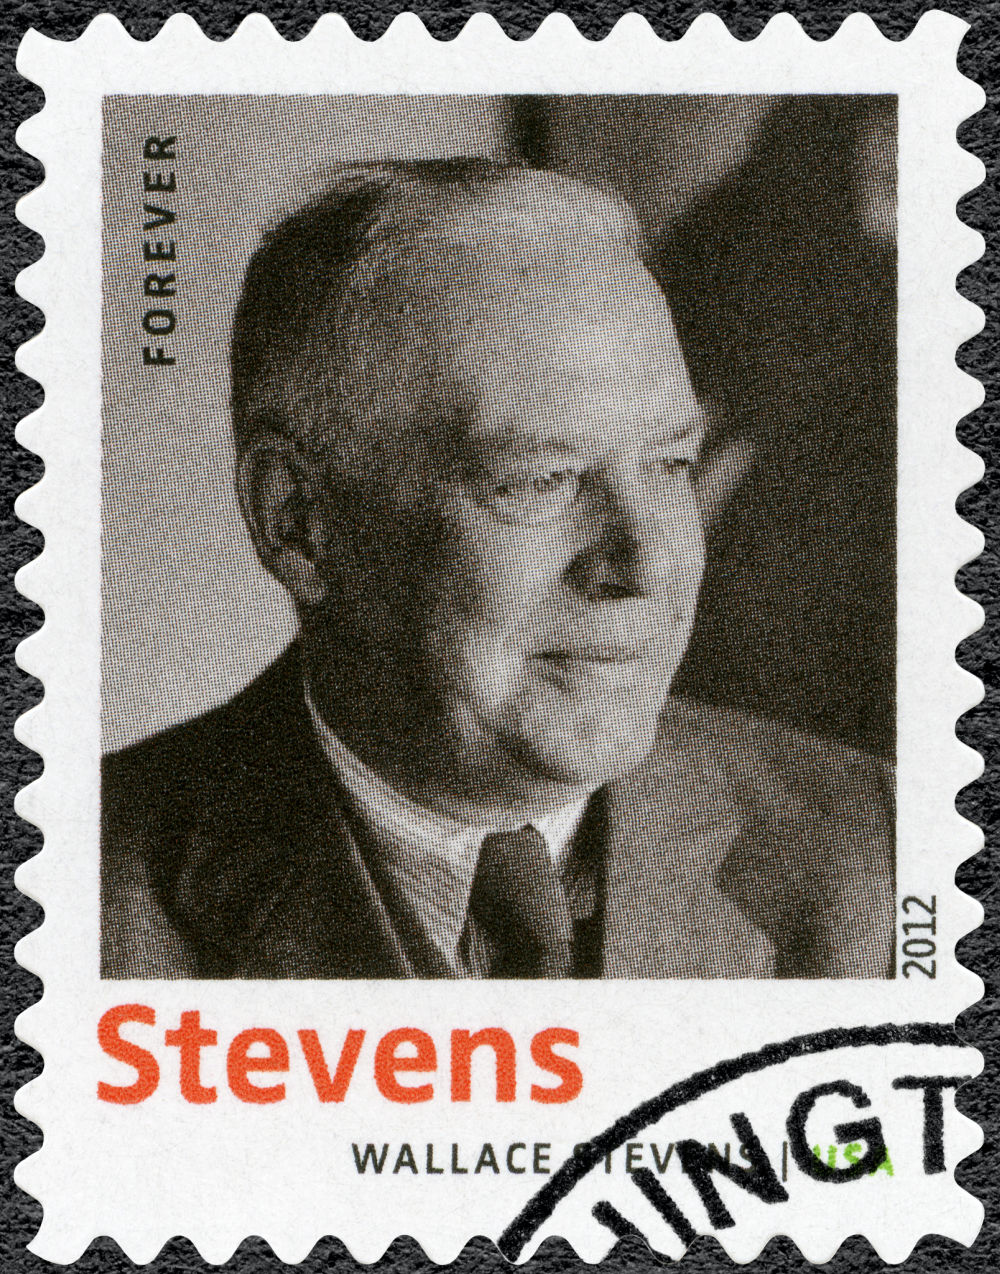 Wallace Stevens stamp